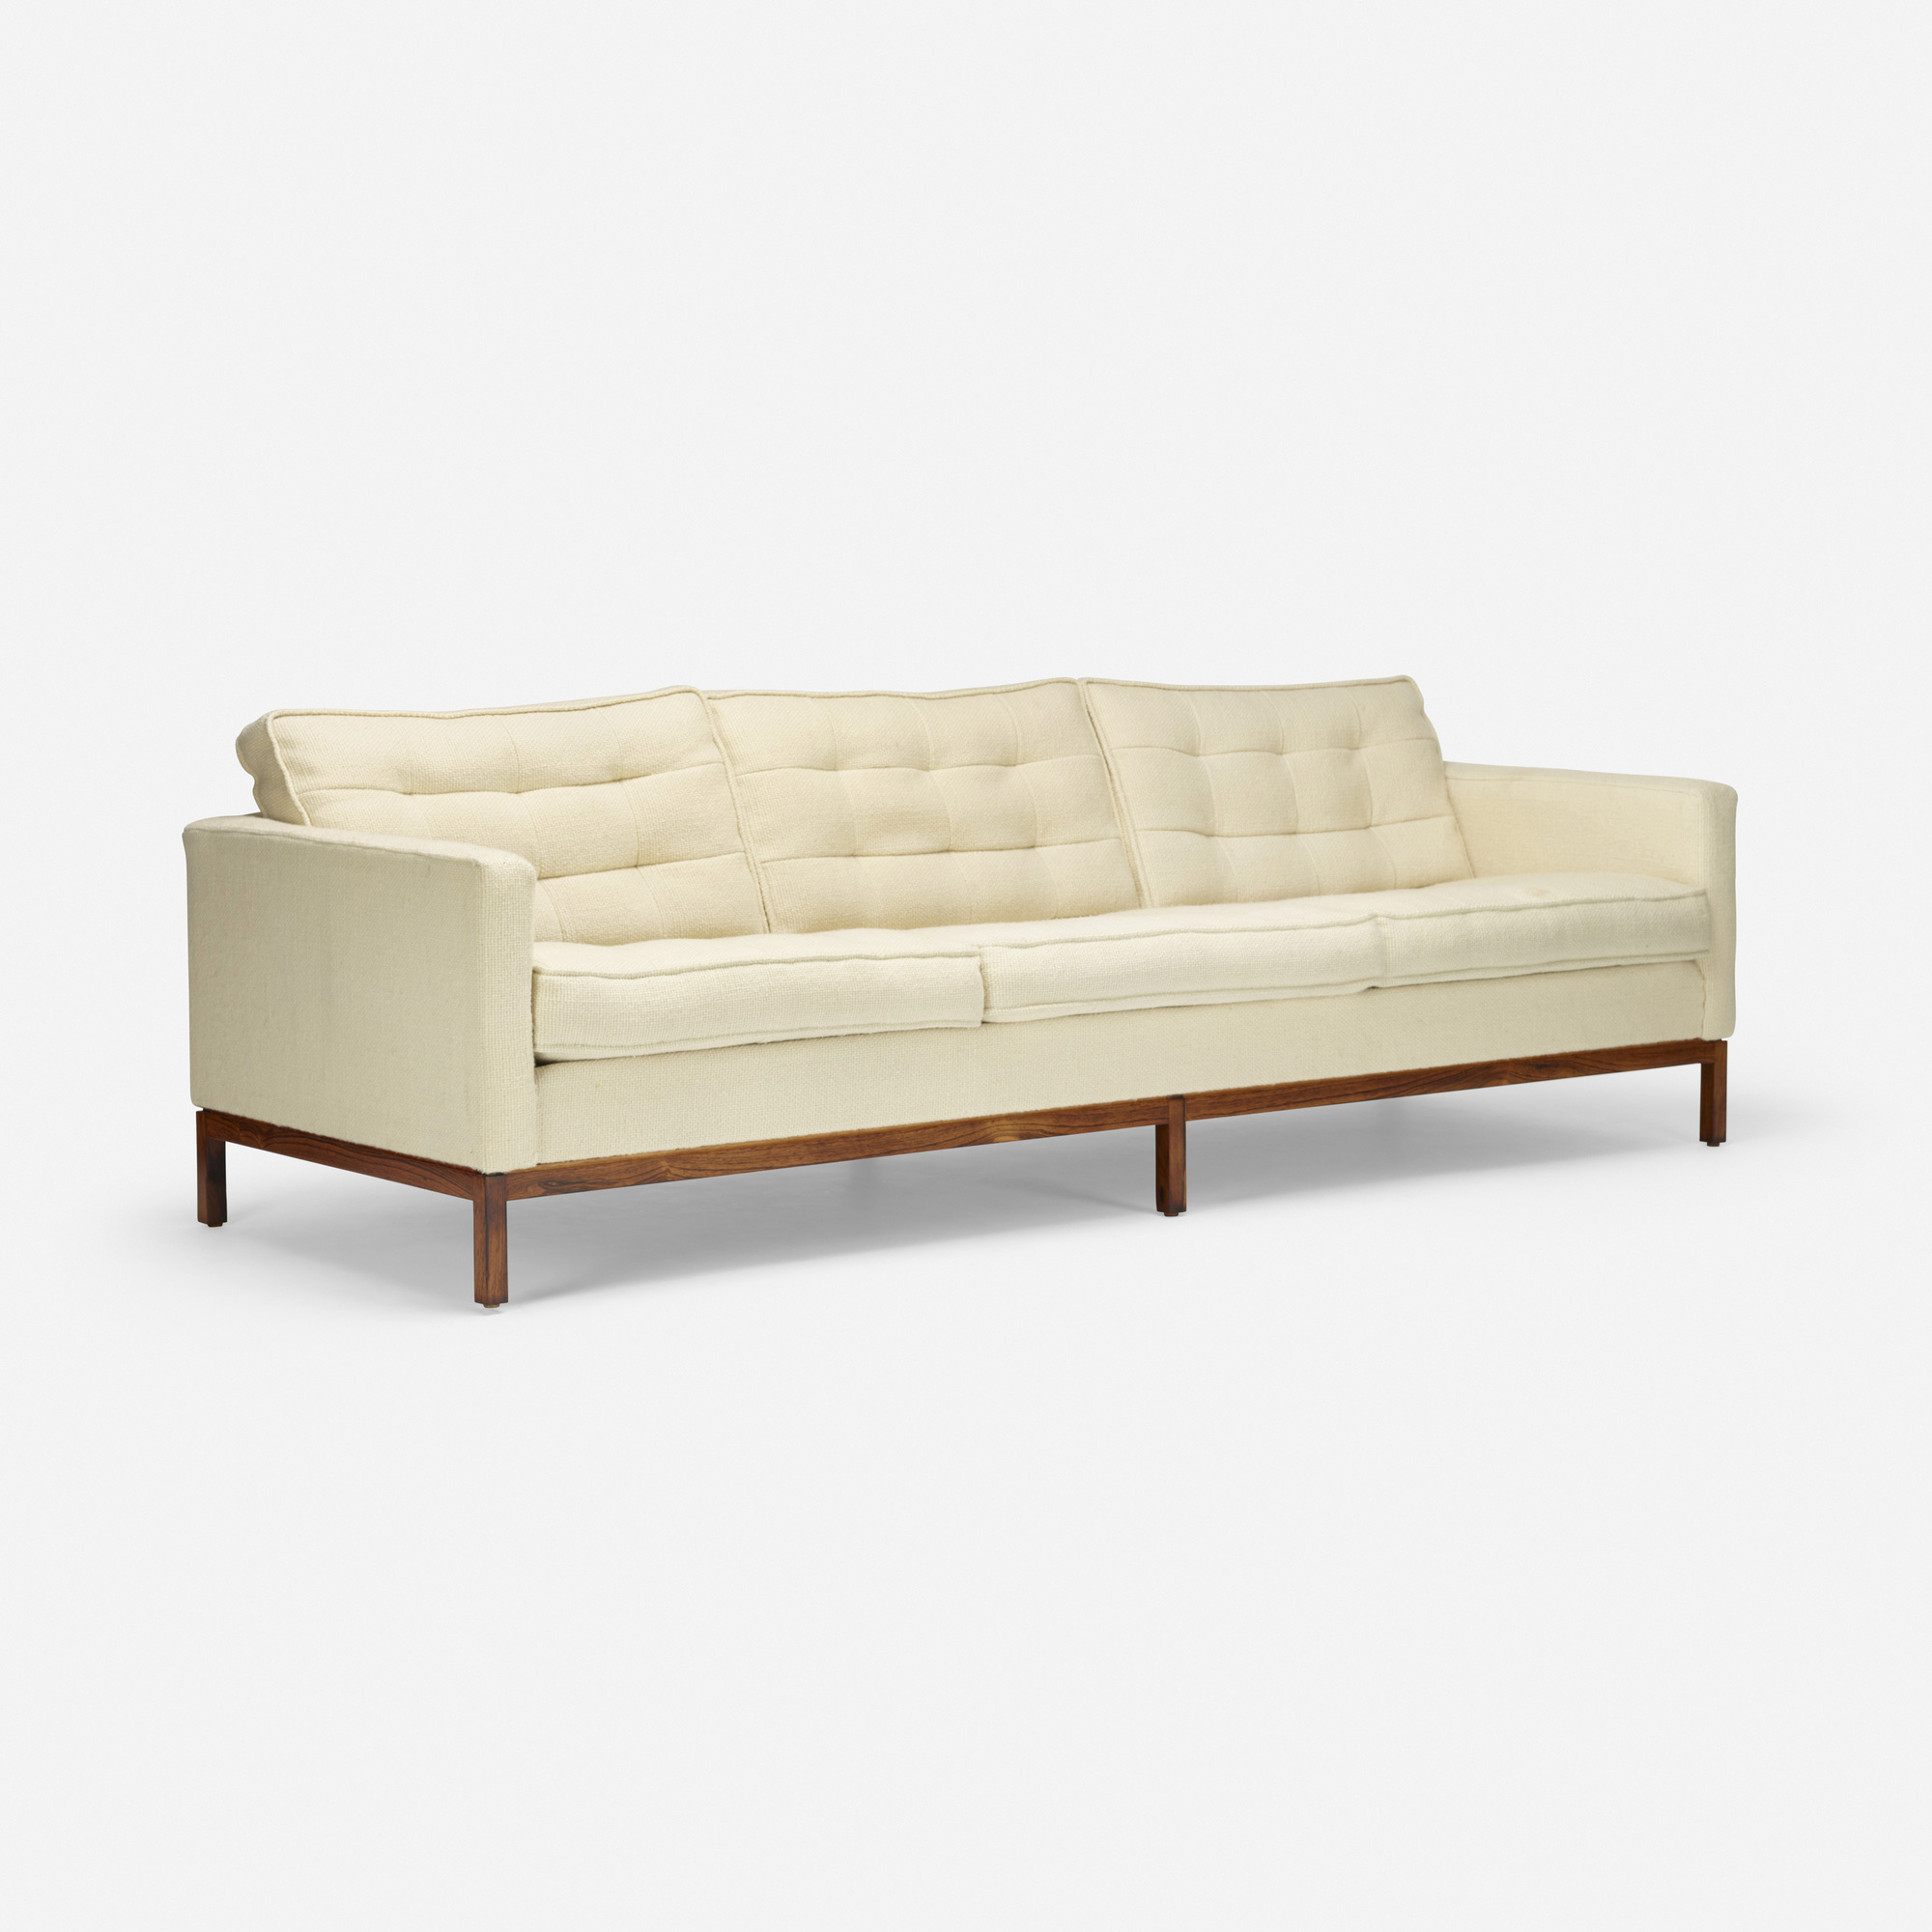 Knoll Sofa 393 Florence Knoll Sofa Mass Modern Day 1 11 August 2016